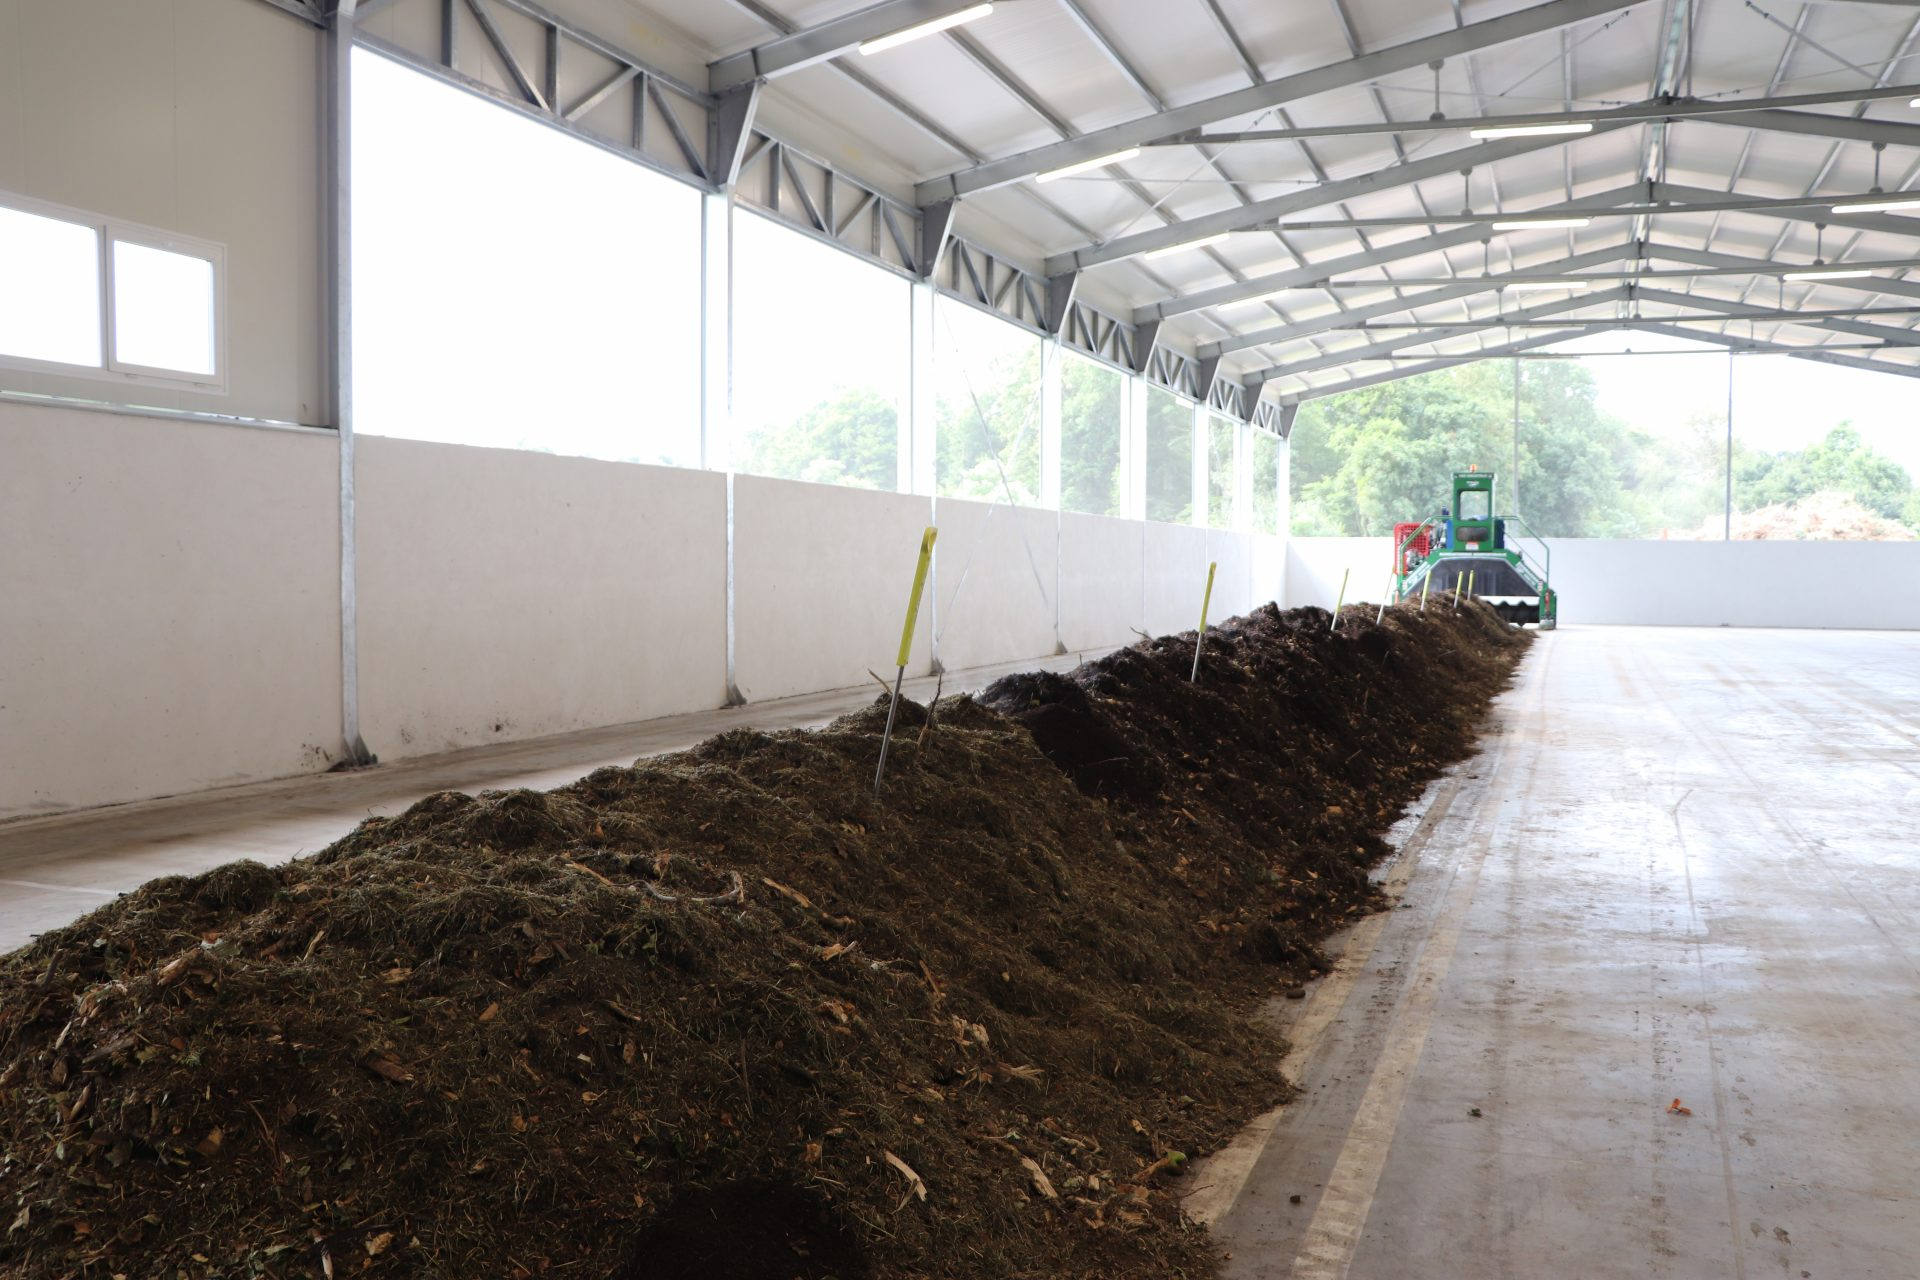 Ceremonially opened and put into trial operation of the Herešin Composting Plant – the most modern composting plant in Croatia